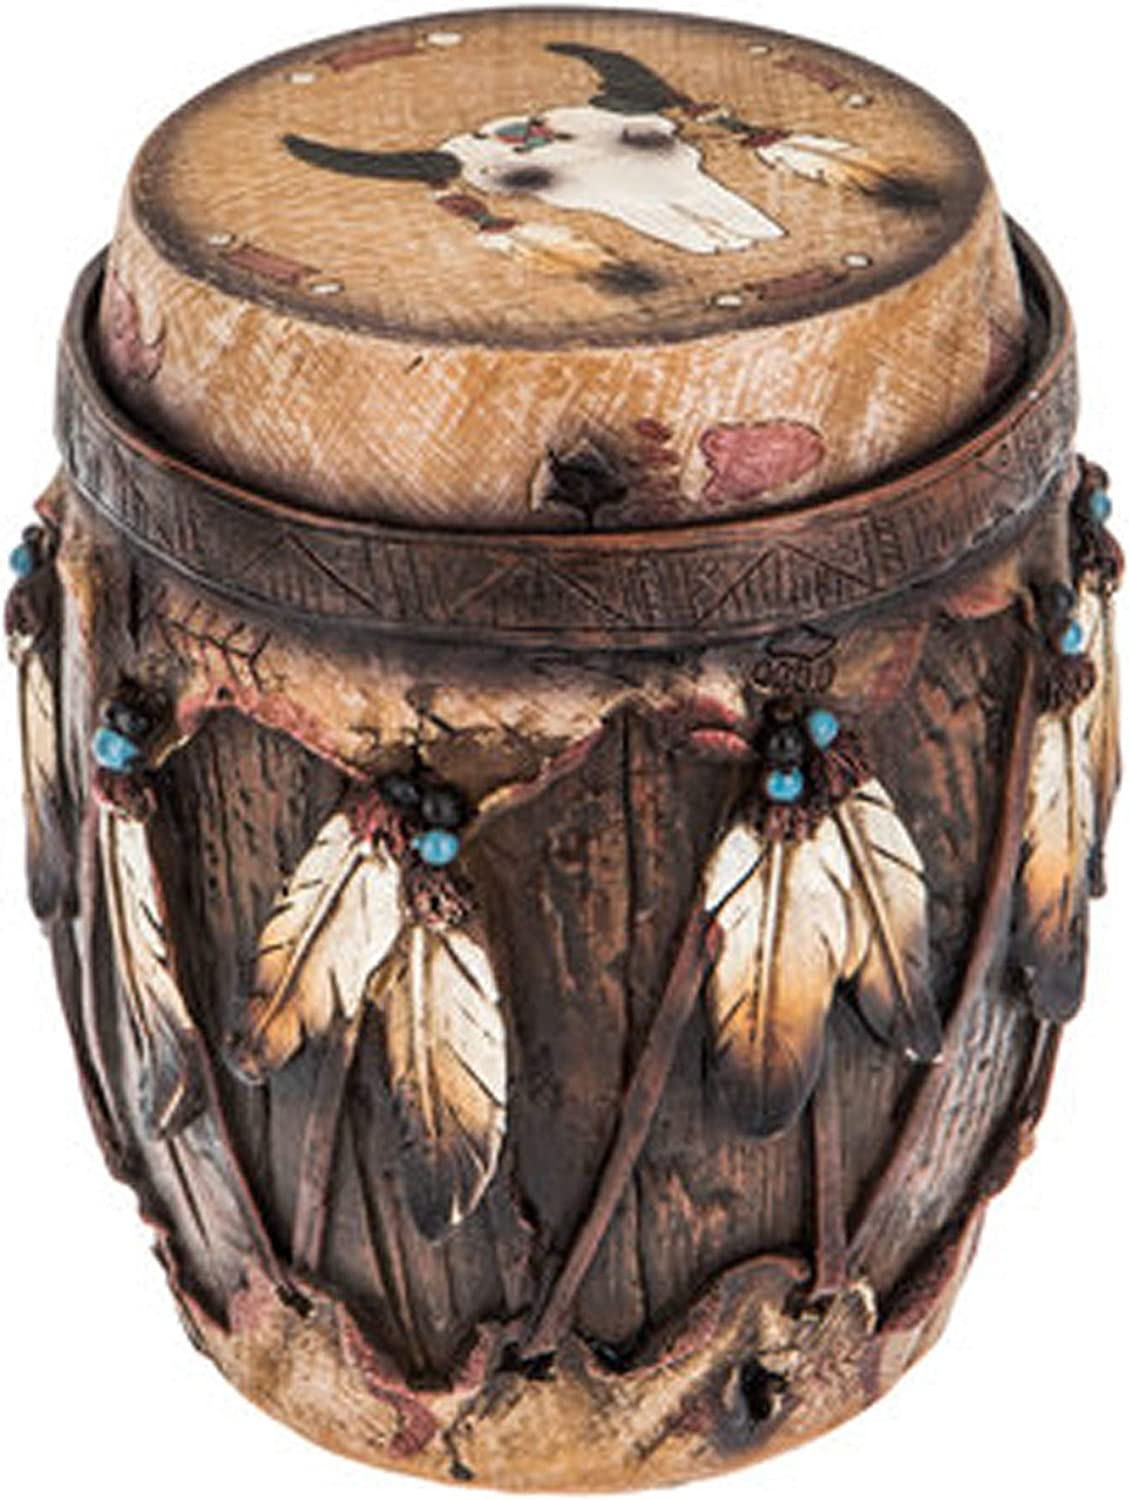 Wisechoice Decorative Native American Round Box with a Brown Barrel-Shaped Drum and Feather Design | Storage for Small Items, 6 in Dia x 7.25 in H